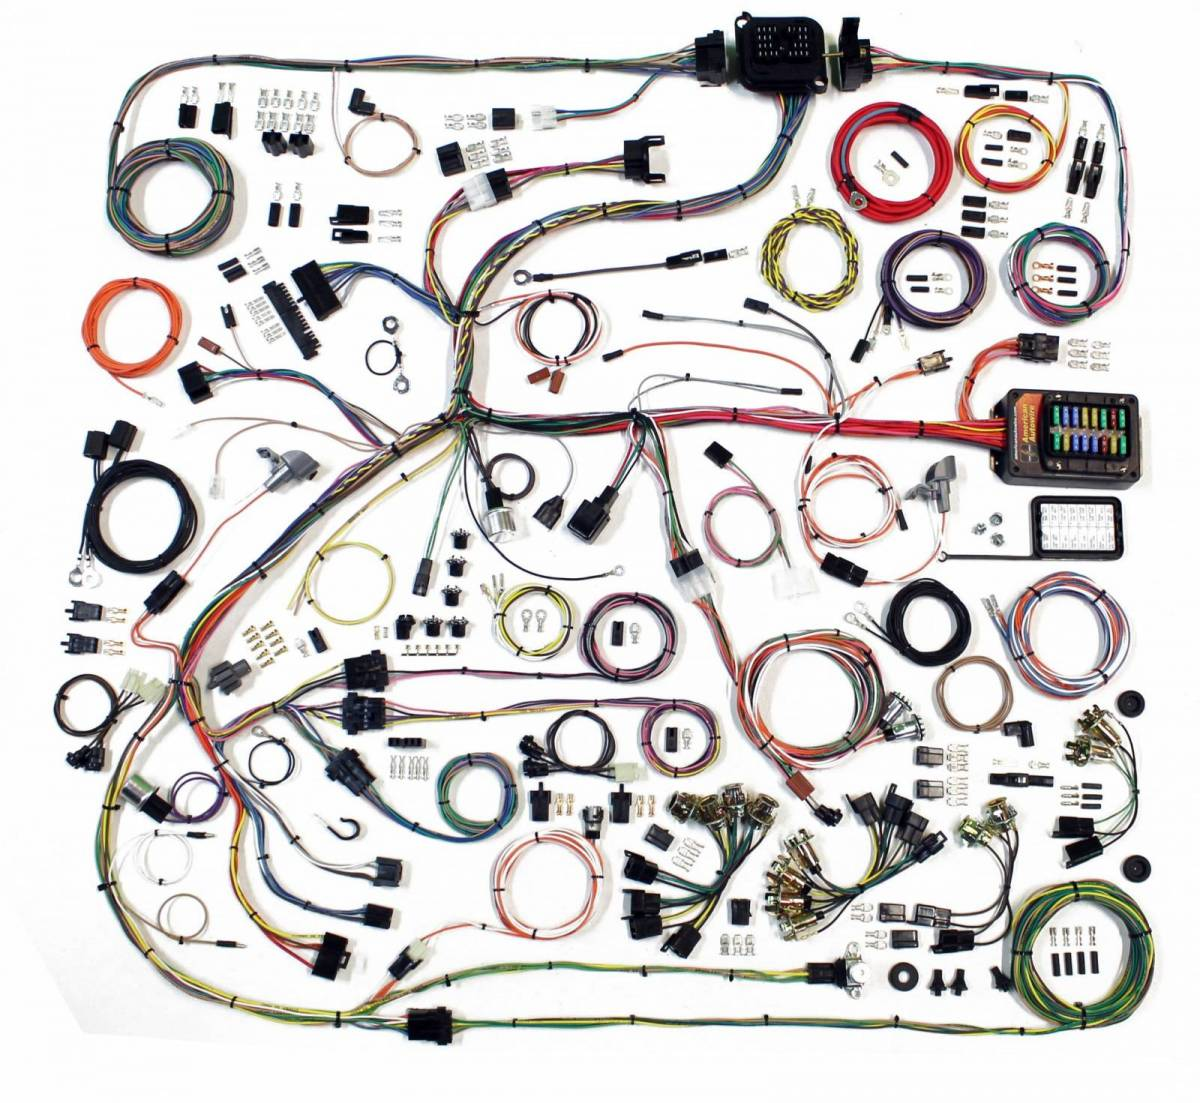 1969 Roadrunner Wiring Harness Diagram Sample 1968 Plymouth Road Runner